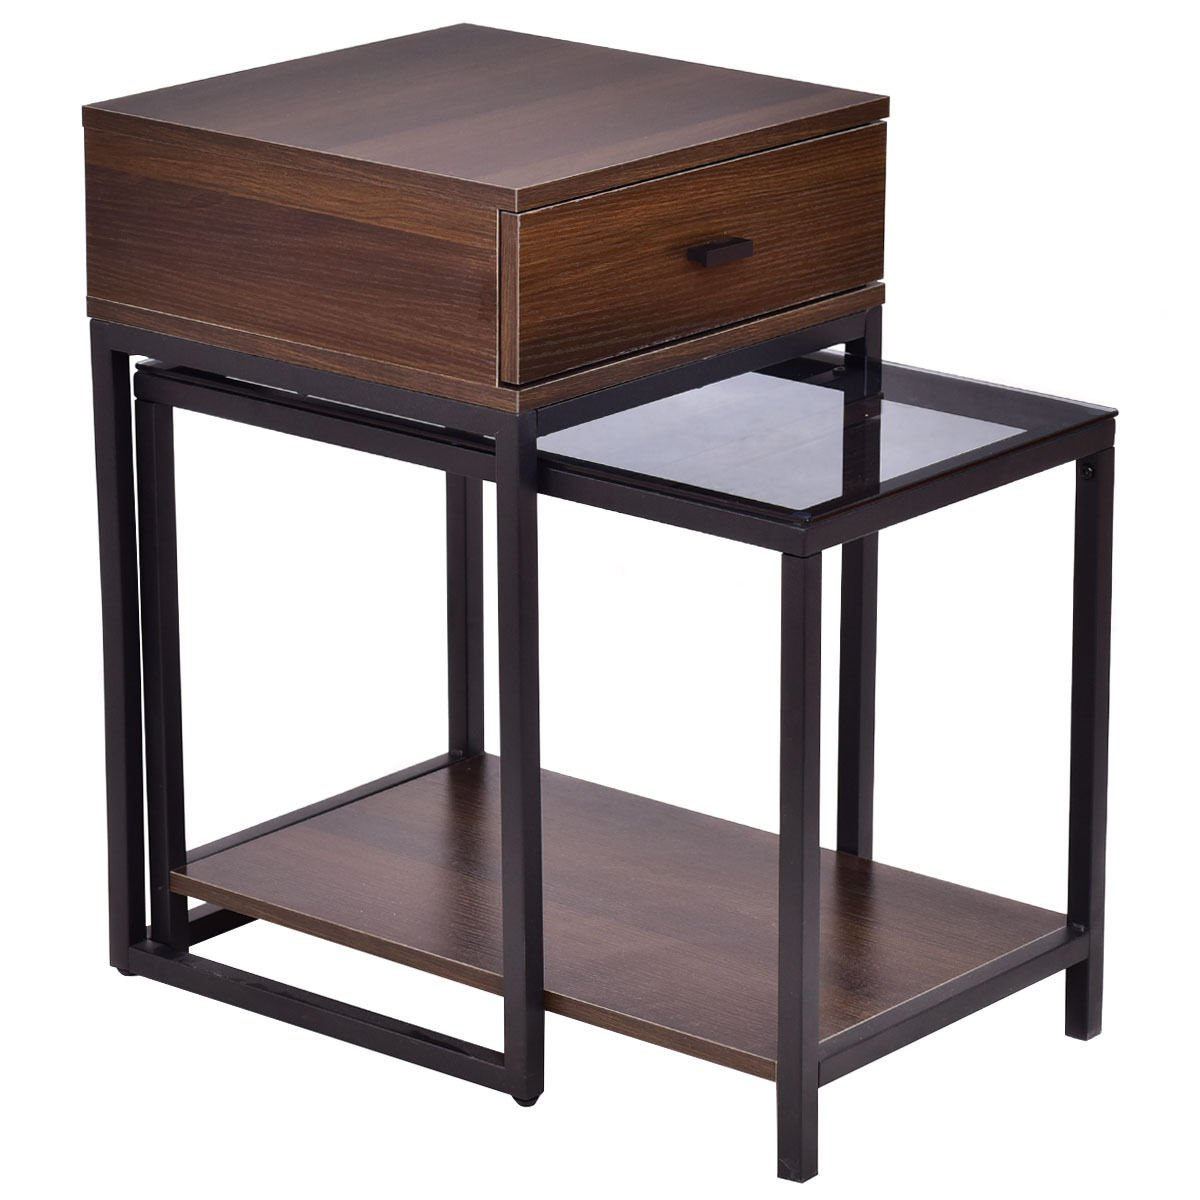 Nesting Table Coffee Table Side Table End Table Metal Frame Wood Glass Top 2PCS by White Bear & Brown Rabbit (Image #1)